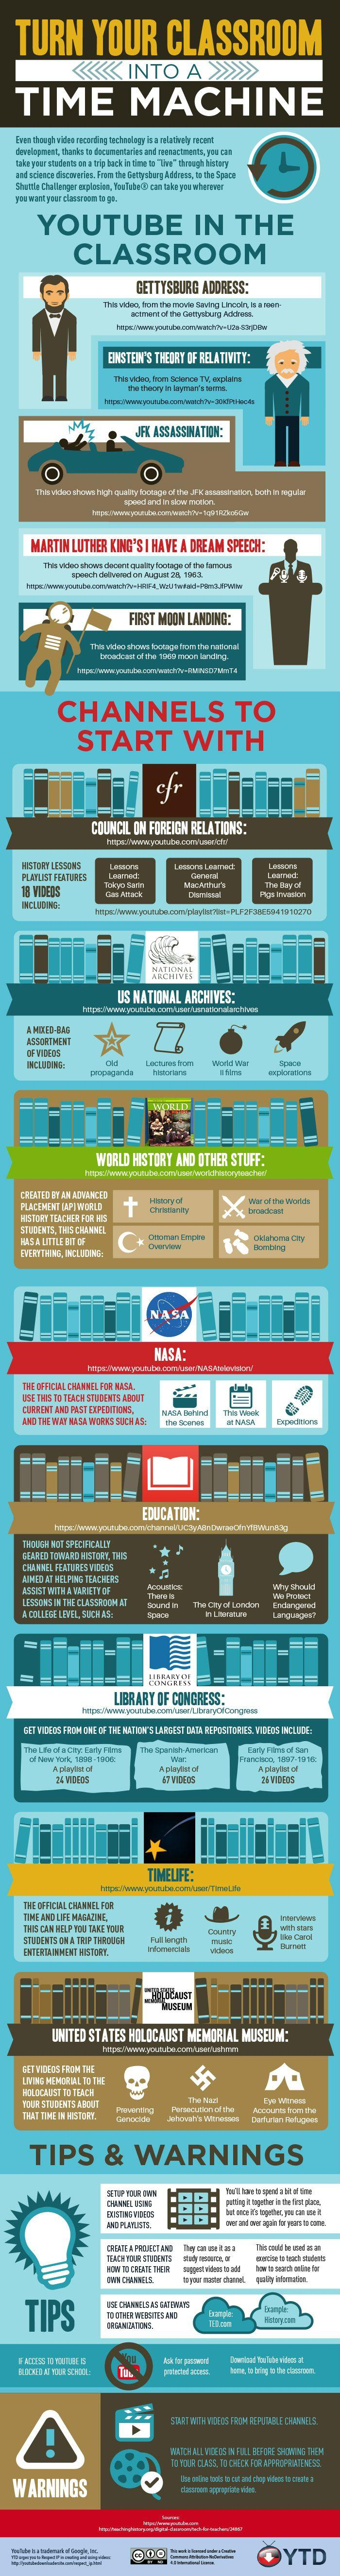 turn your classroom into time machine infographic